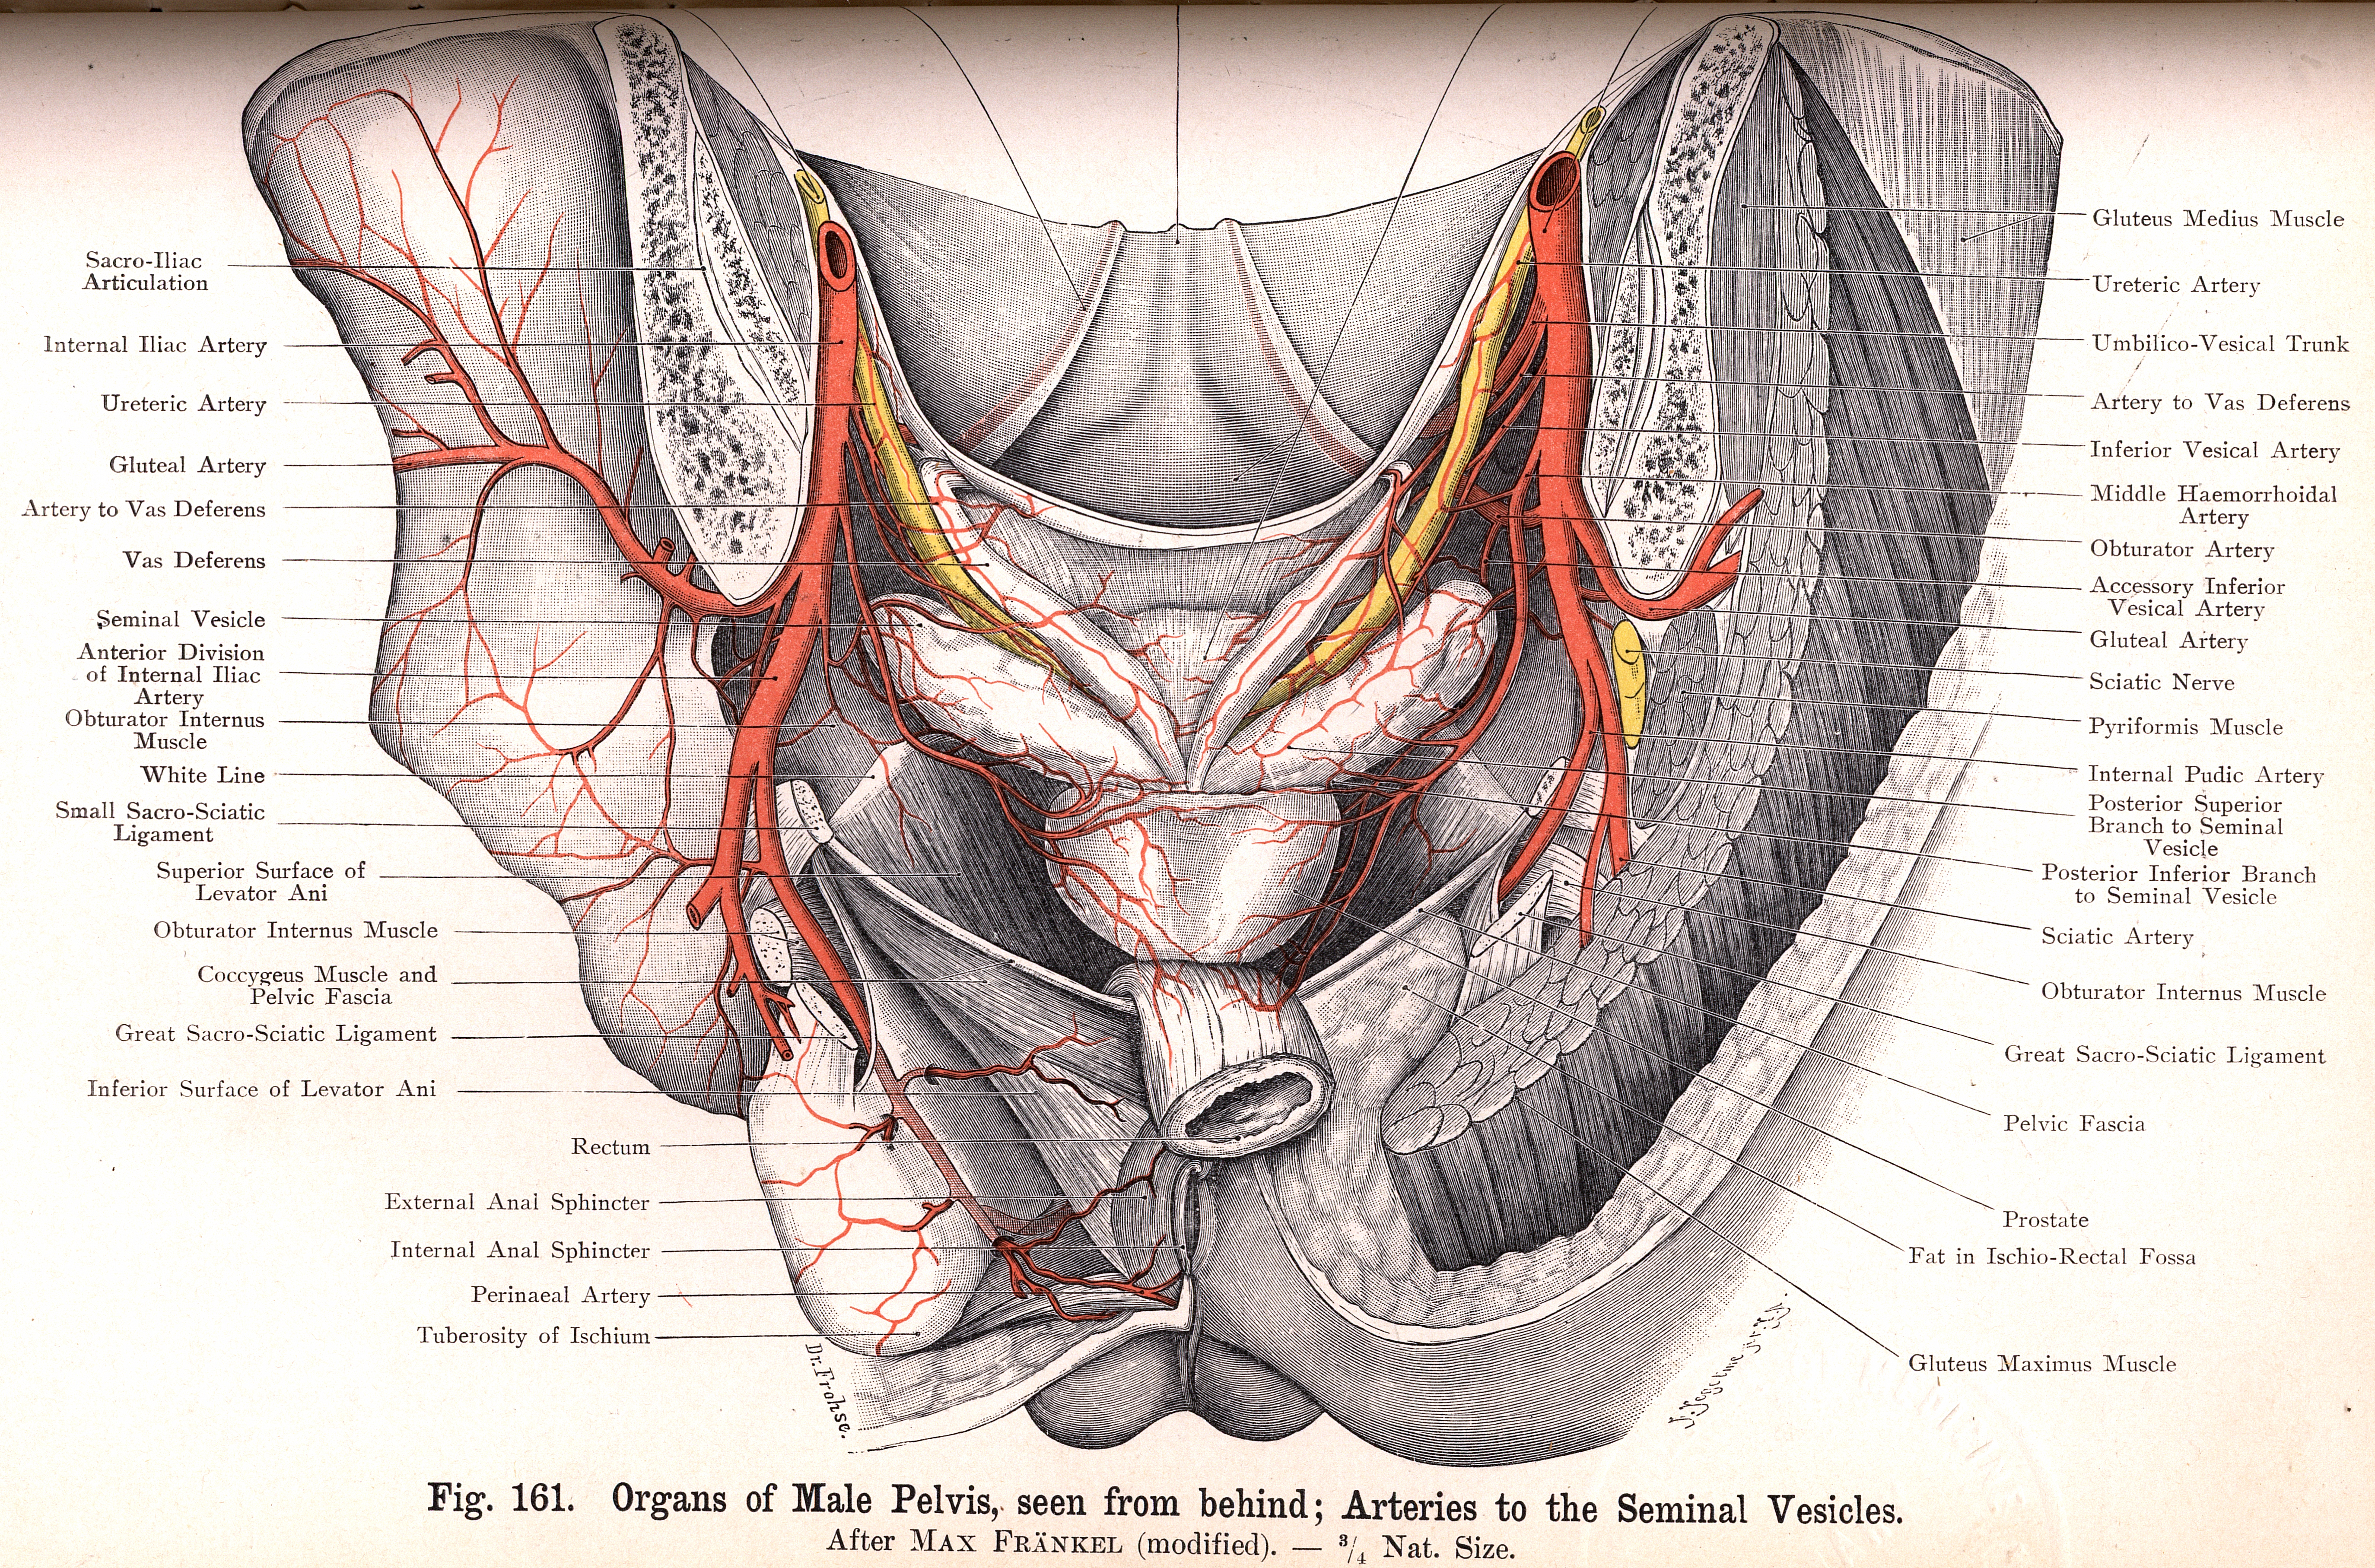 161. Male Pelvic Organs, from behind. Arteries to Seminal Vesicles